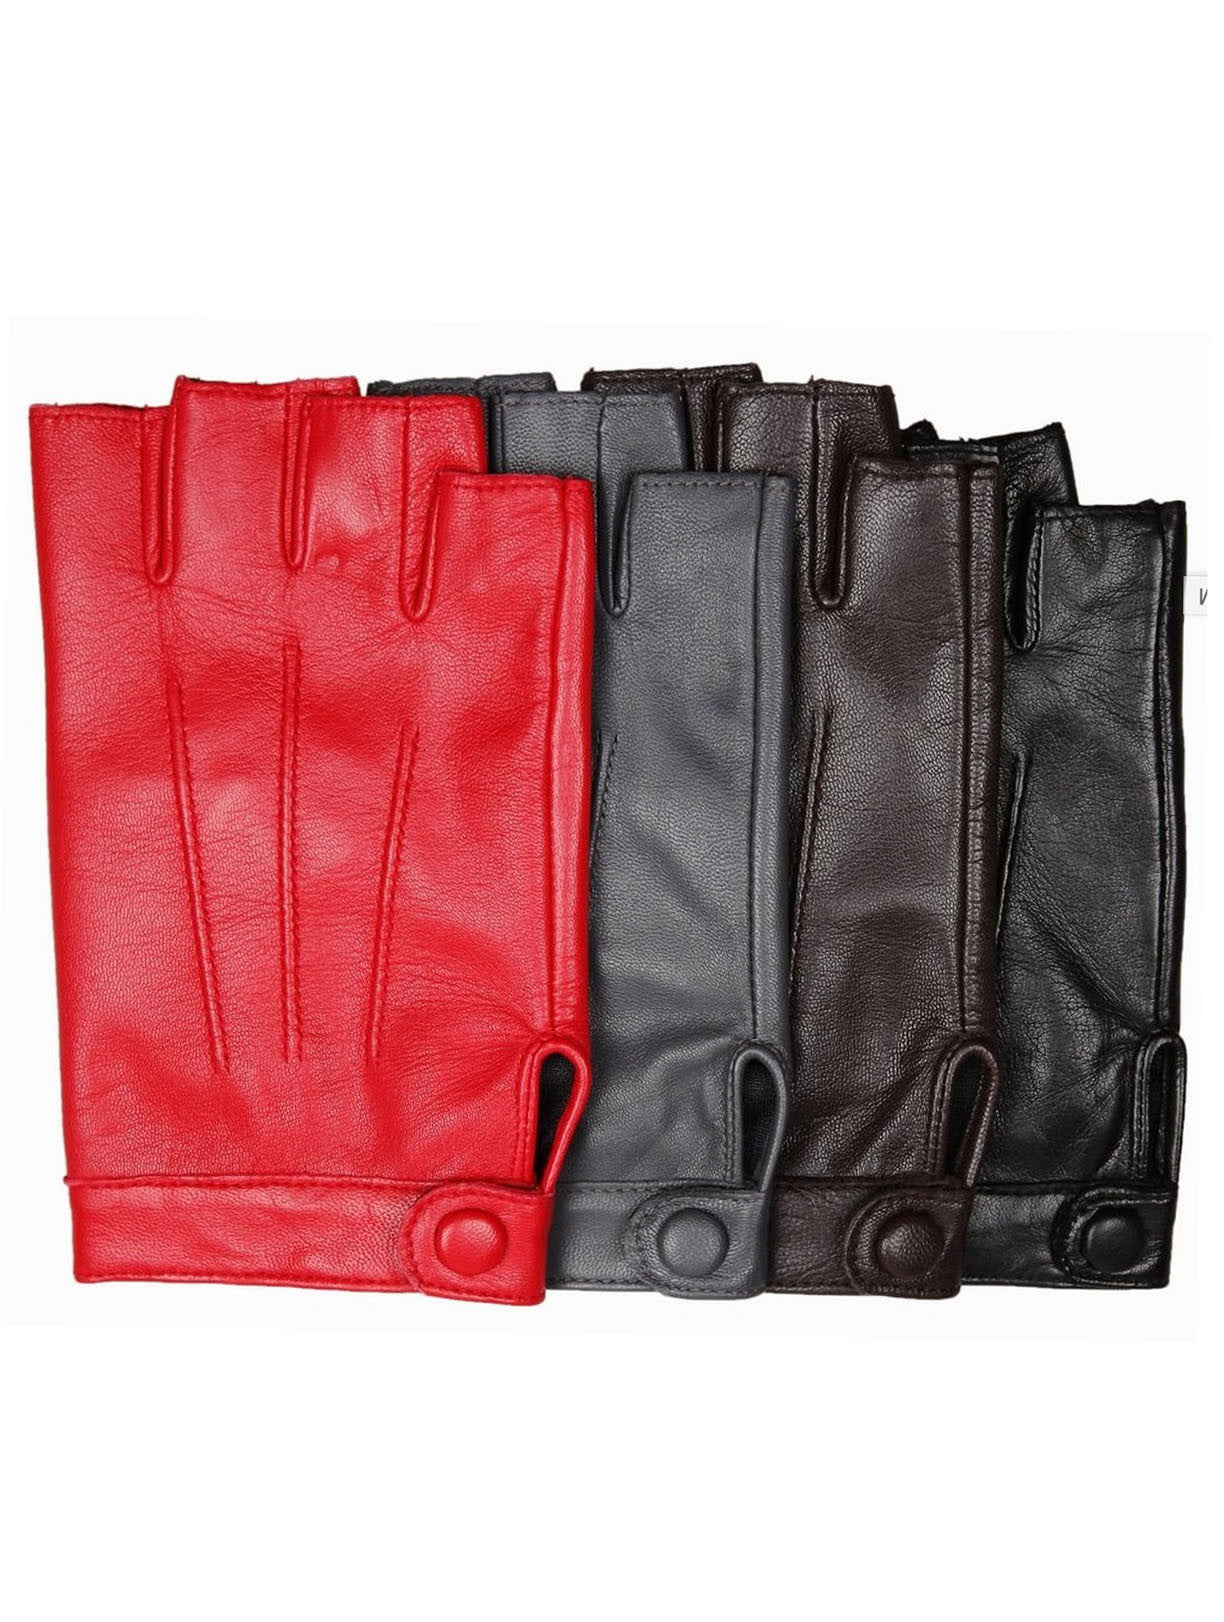 Rocker Fingerless Gloves in Red, Black, Grey, or Brown